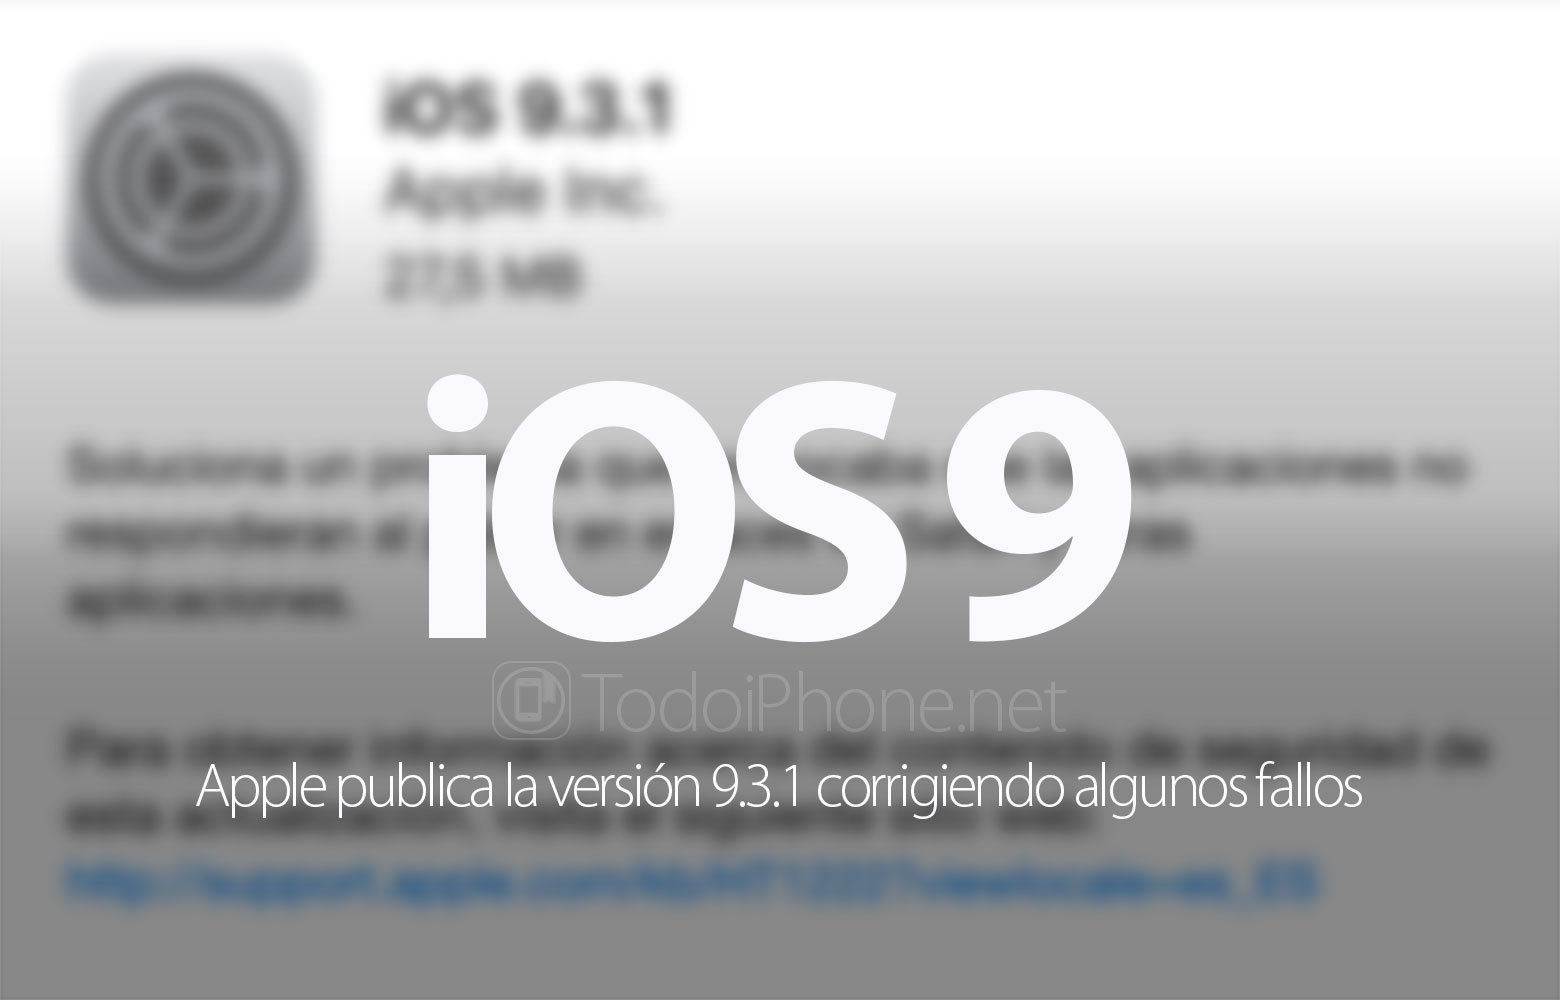 apple-publica-ios-9-3-1-iphone-ipad-enlaces